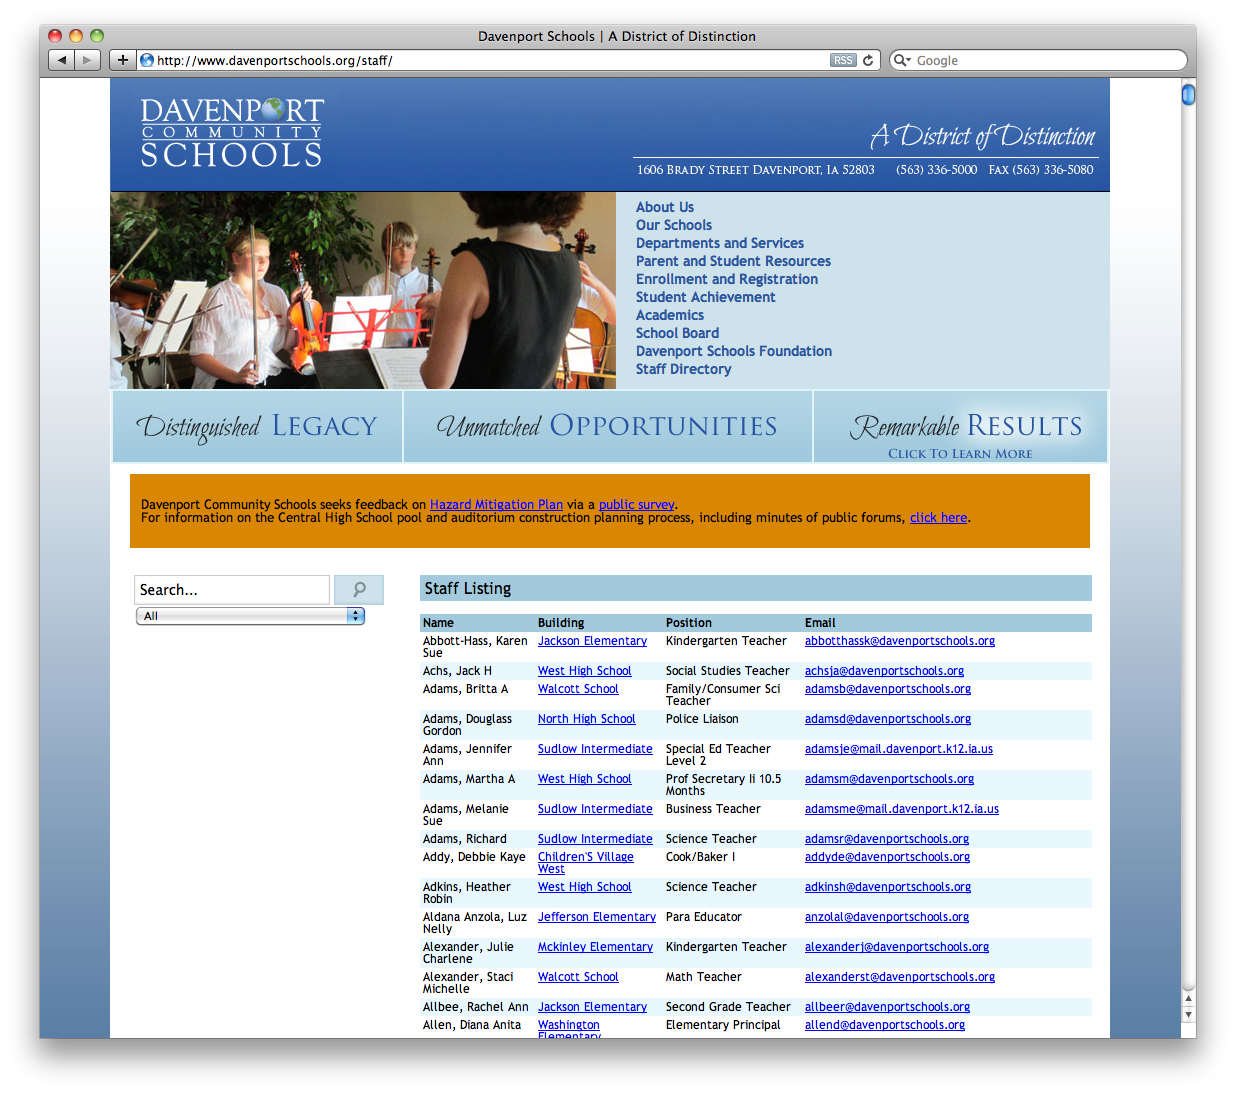 Davenport Schools Staff Listings Page